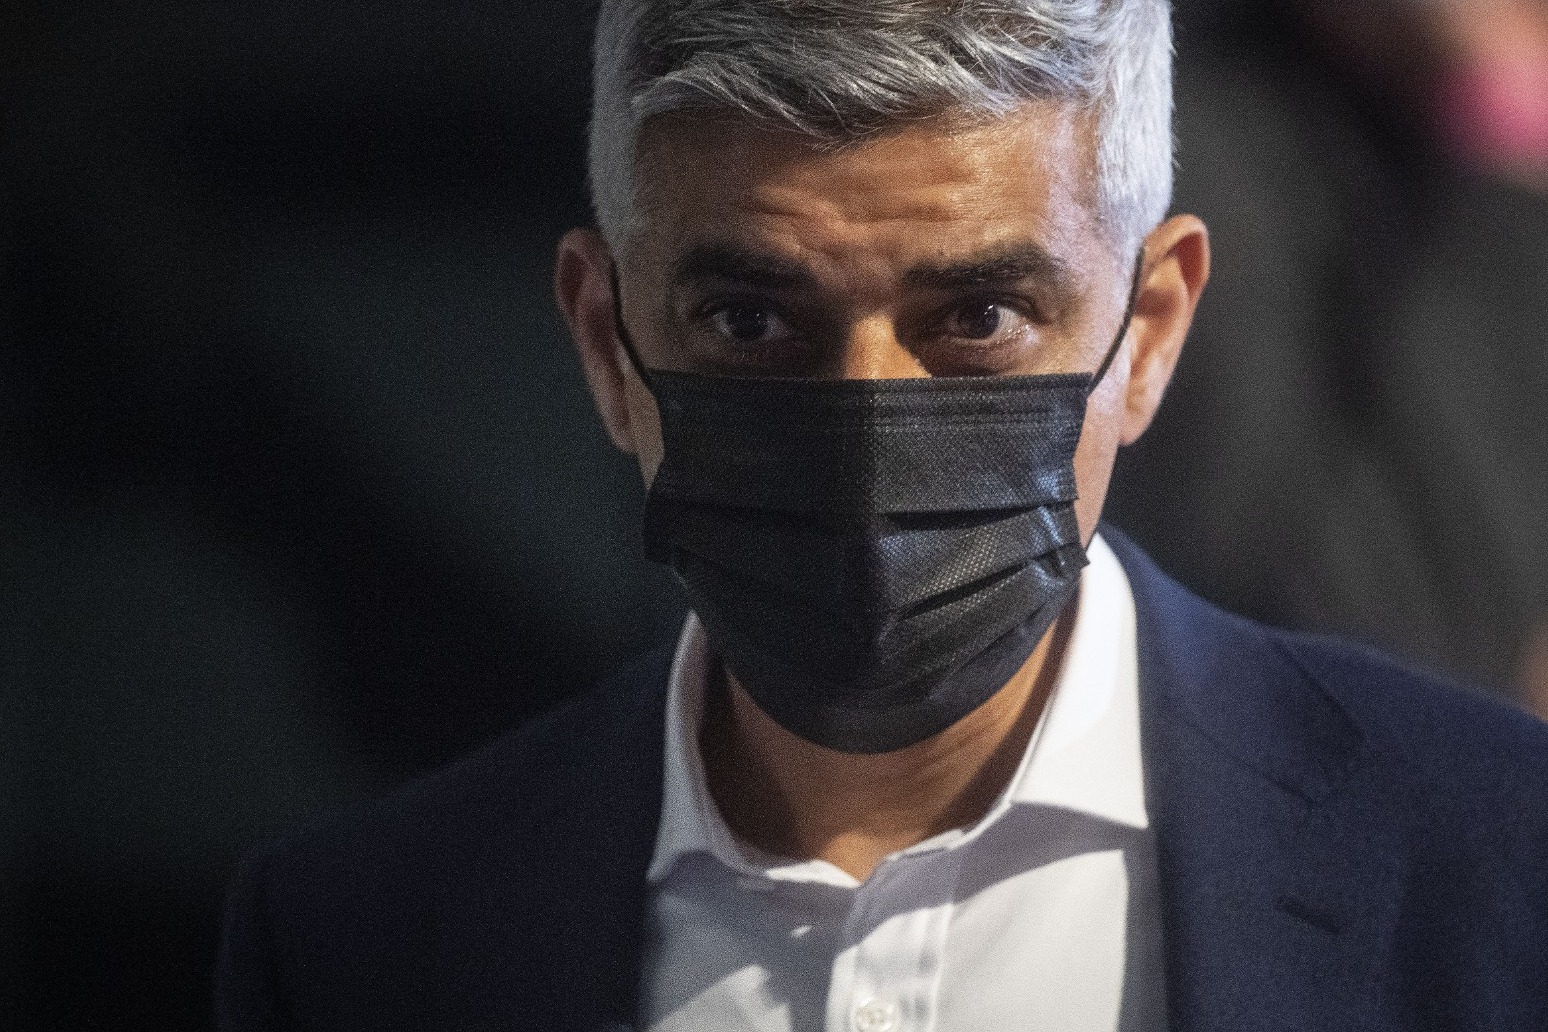 Sadiq Khan pledges to rebuild Government relations in mayoral victory speech